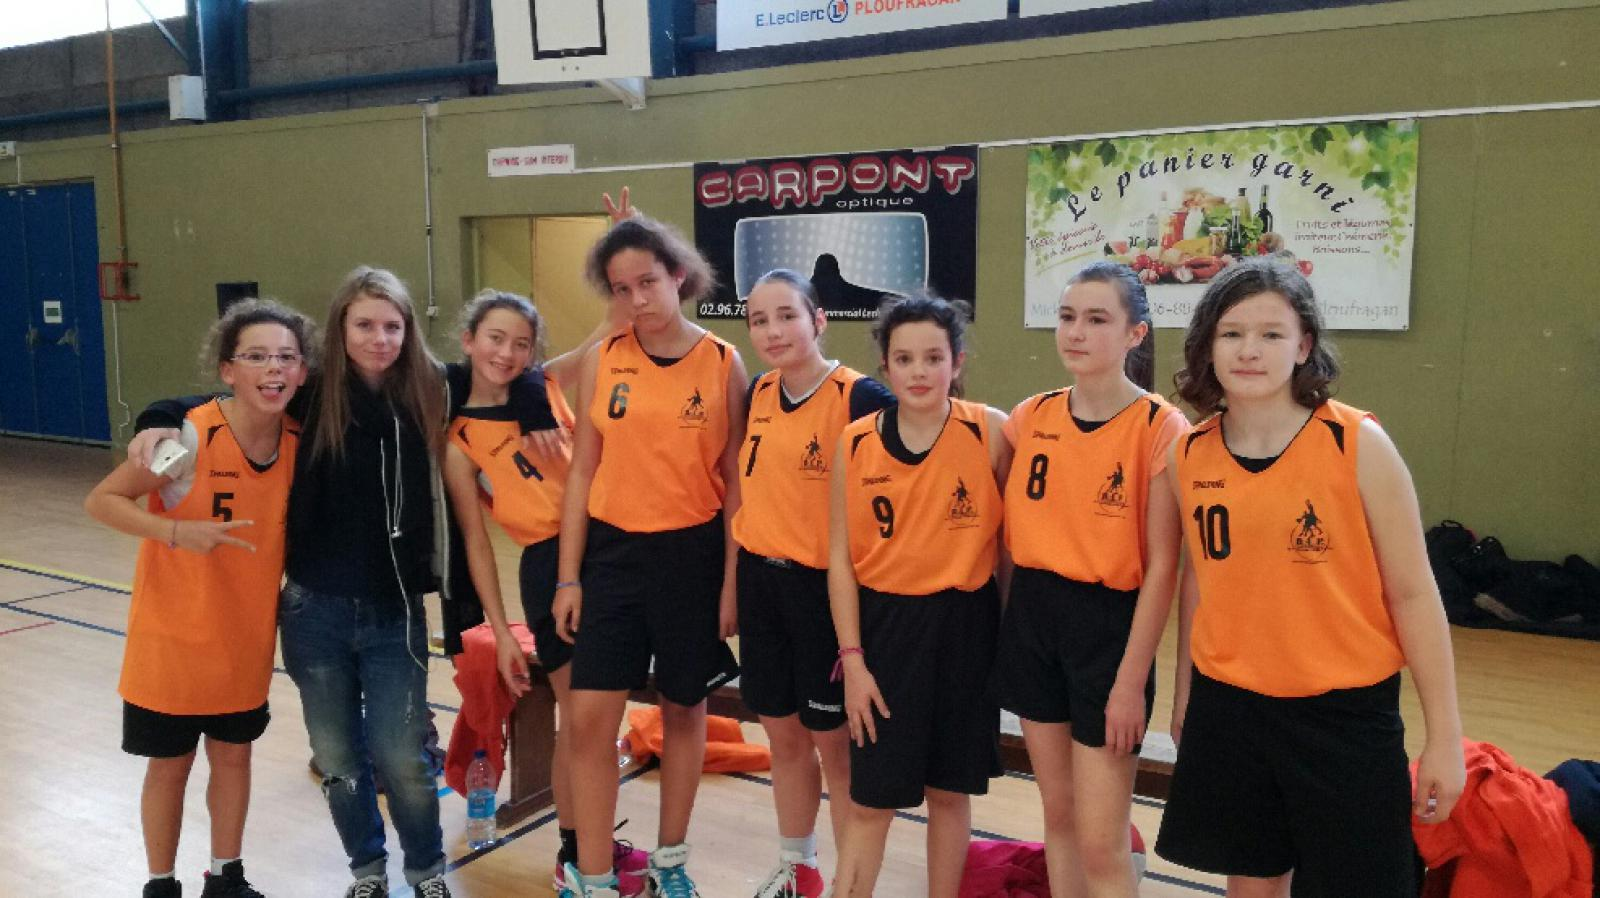 U13 FILLES-1 CTC - COMPETITION - AL PLOUFRAGAN BASKET-BALL